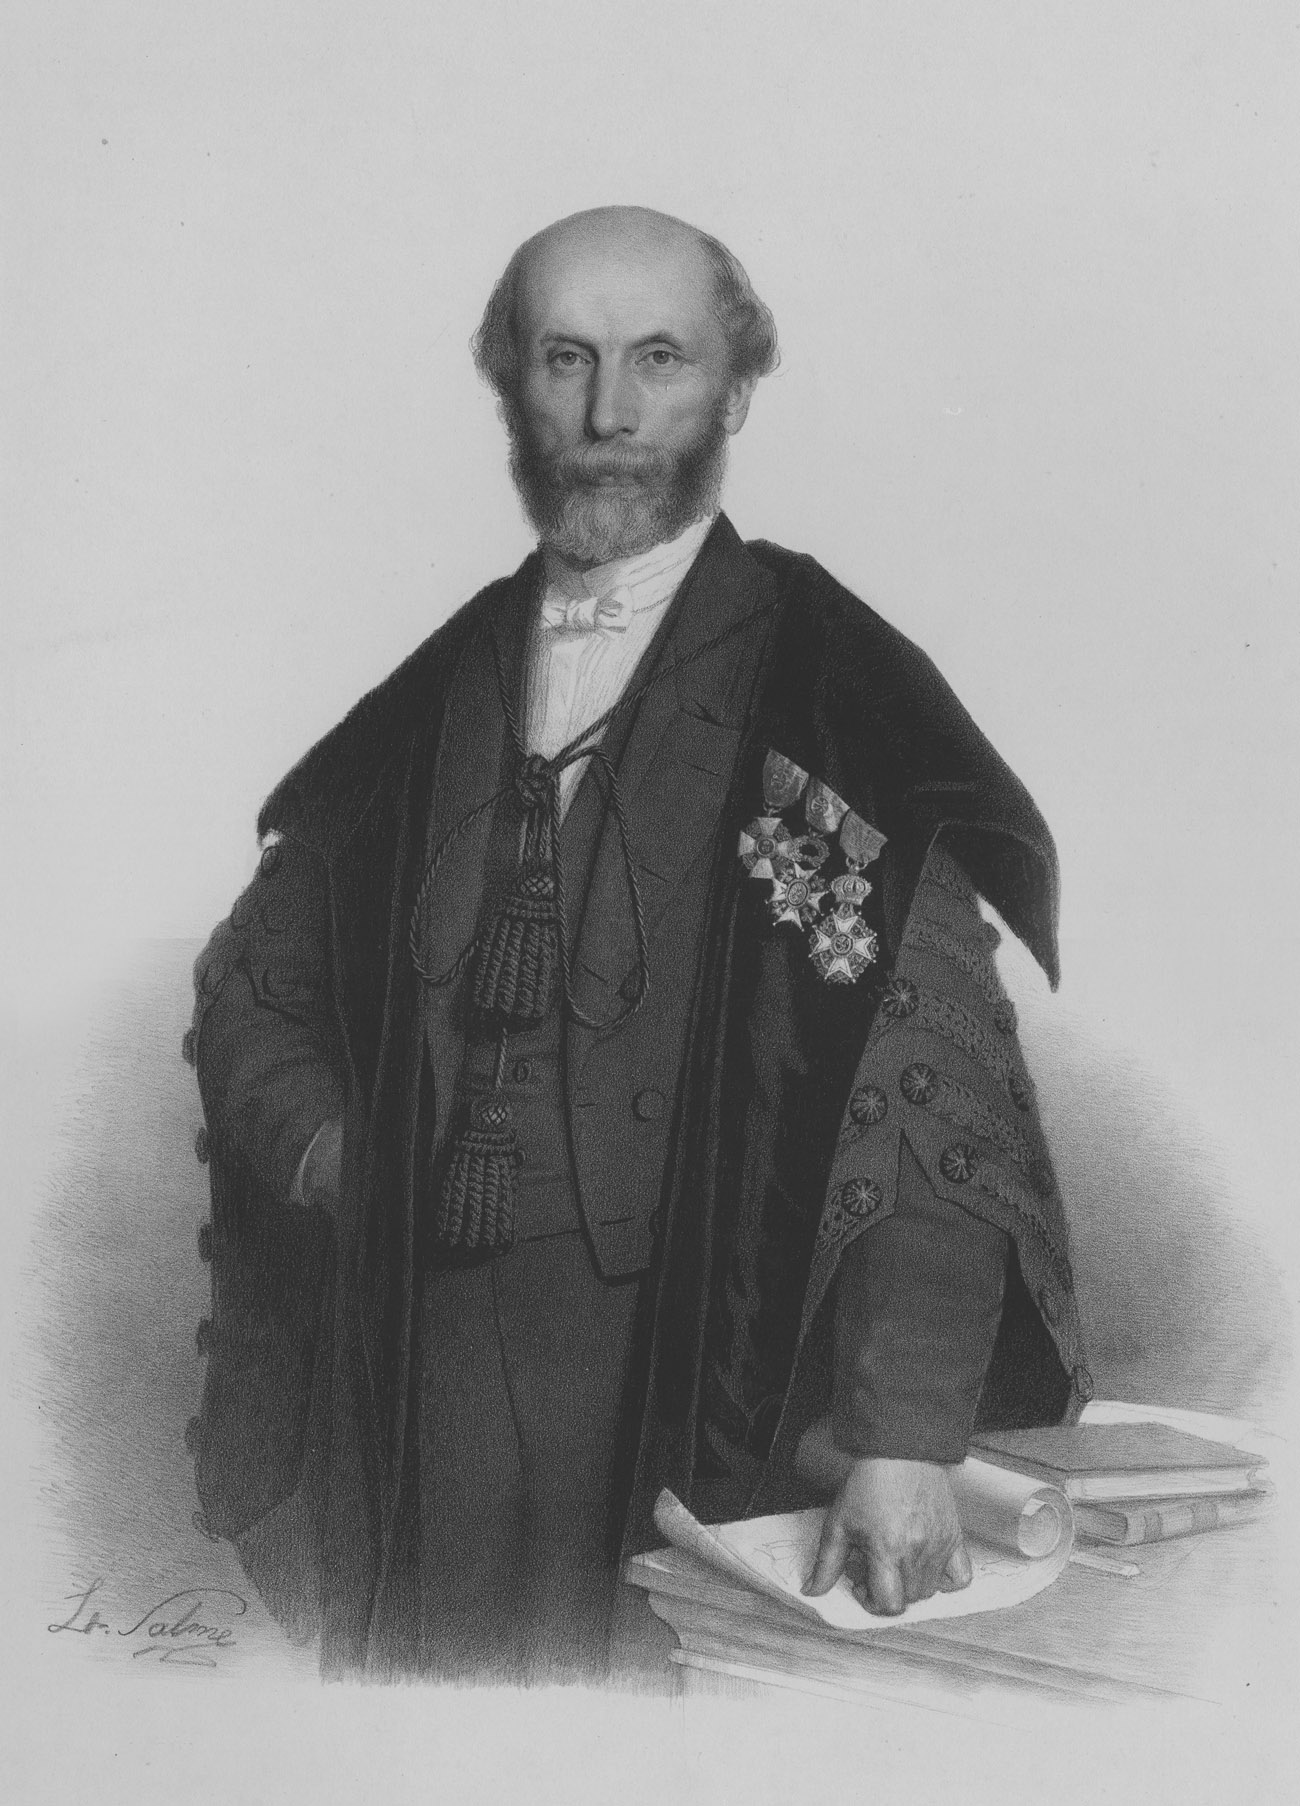 Louis Trasenster (1816-1887), recteur de l'Université de Liège